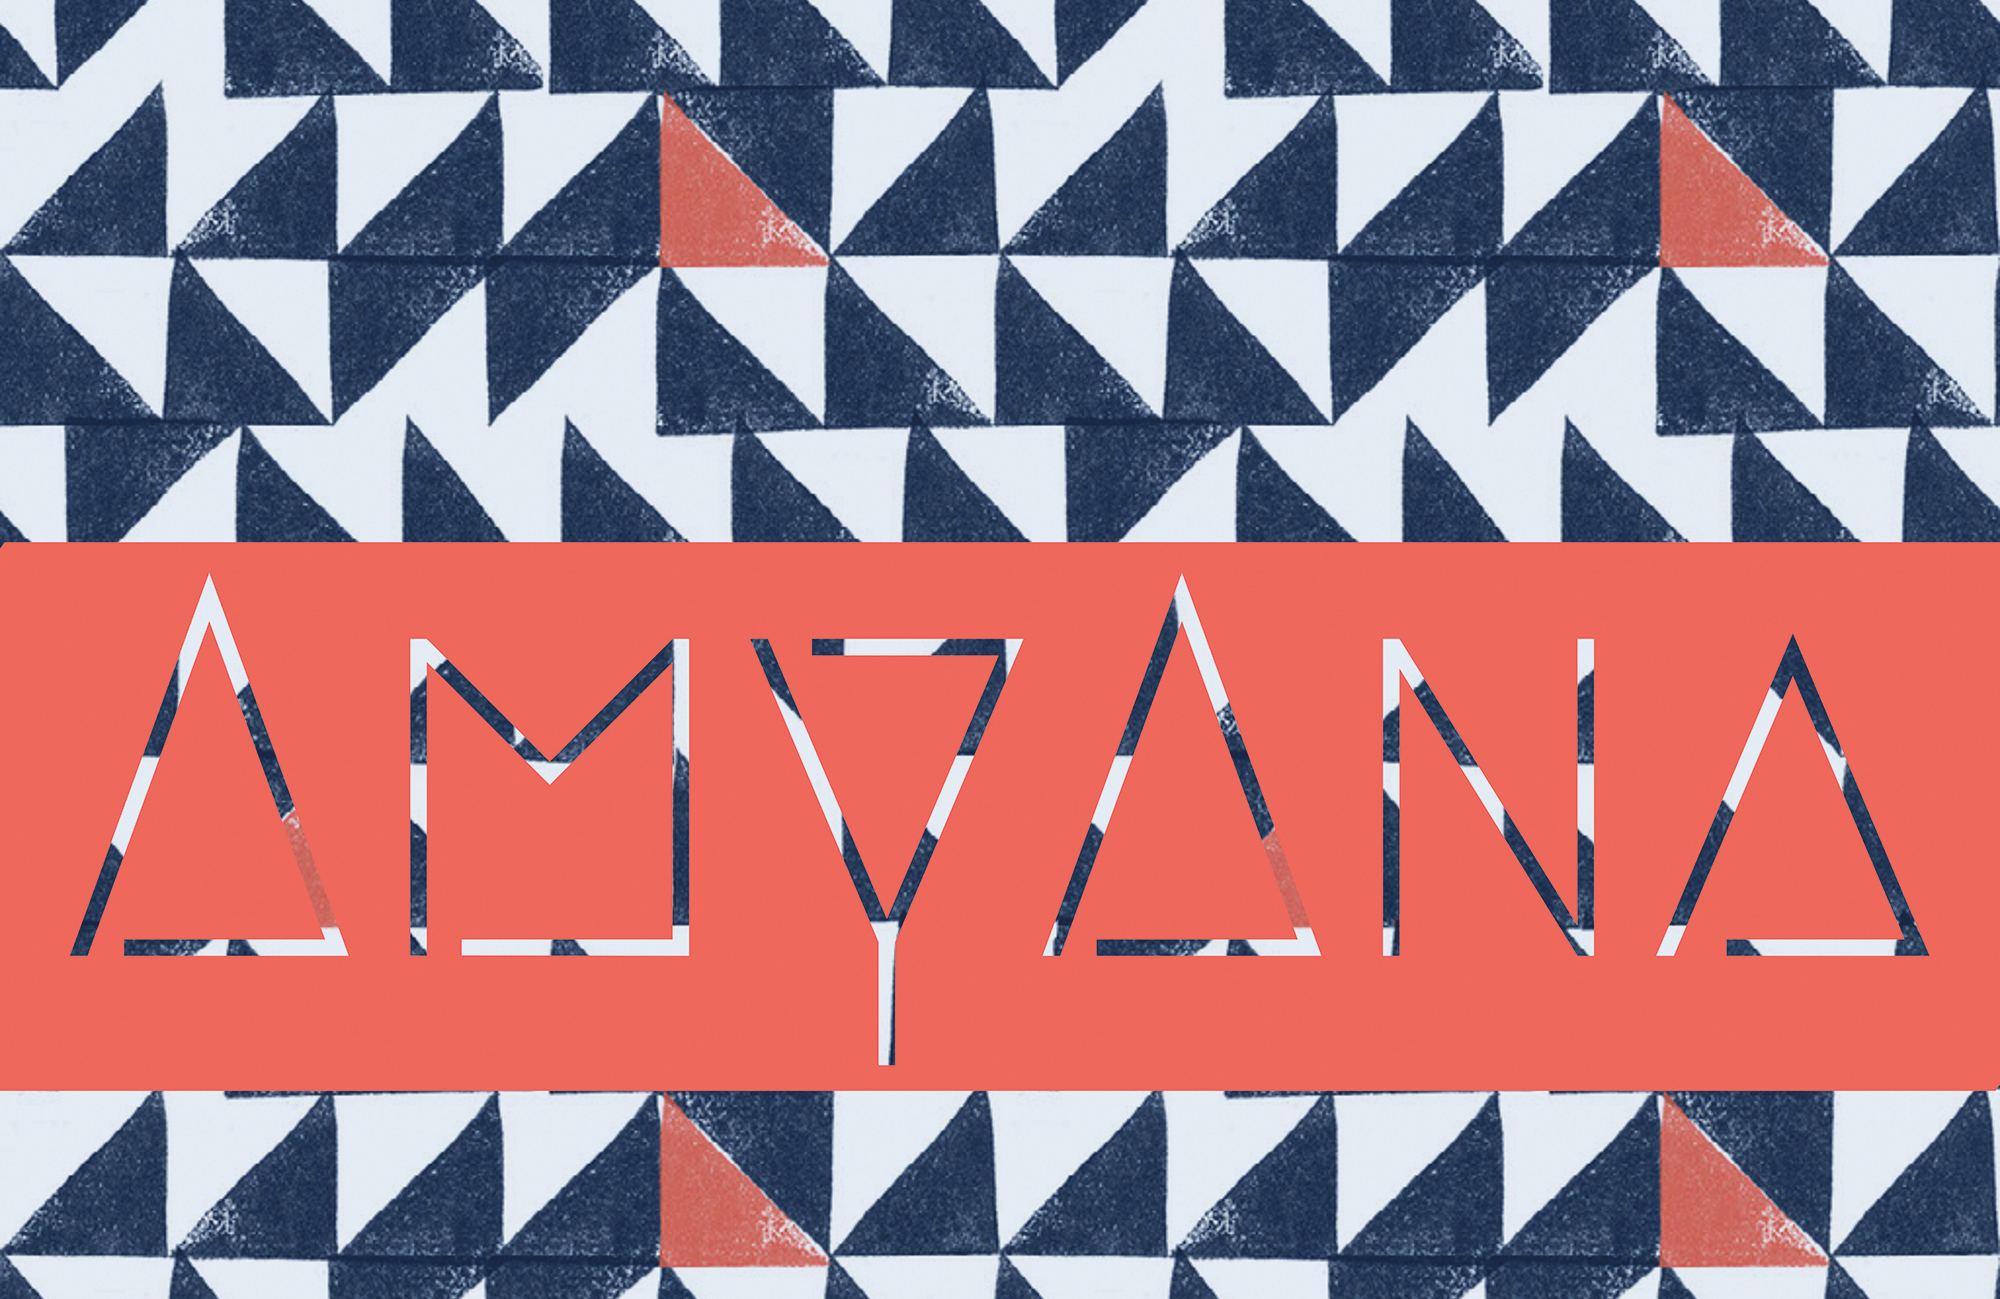 Cover Art from AmyAna, blue and white triangle background with orange stripe.